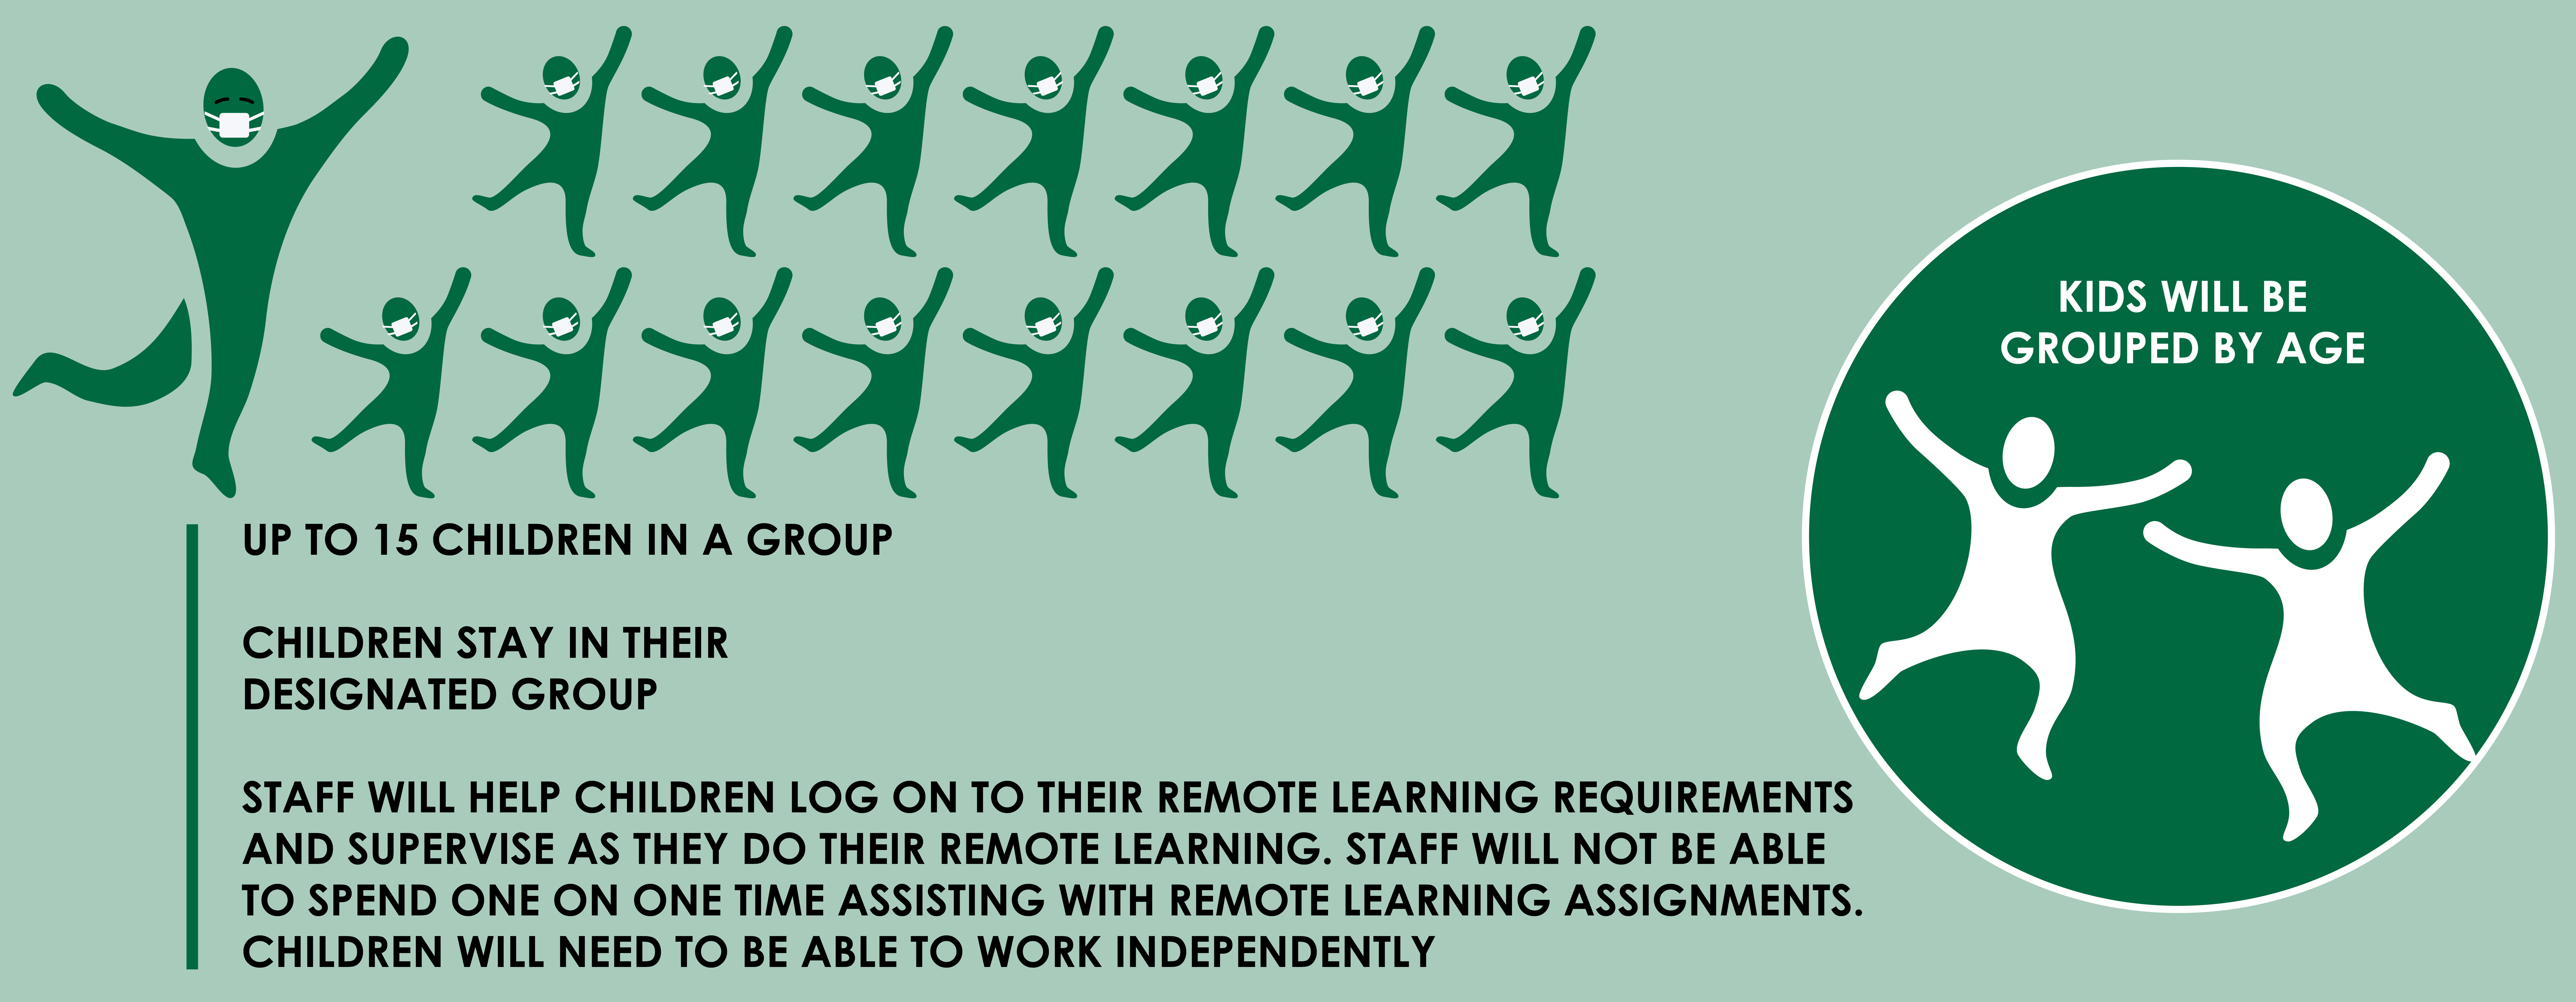 15 children per designated group. Groups are based upon grade level. Staff will assist with remote learning. However, will not be able to spend one on one time assisting with remote learning assignments.